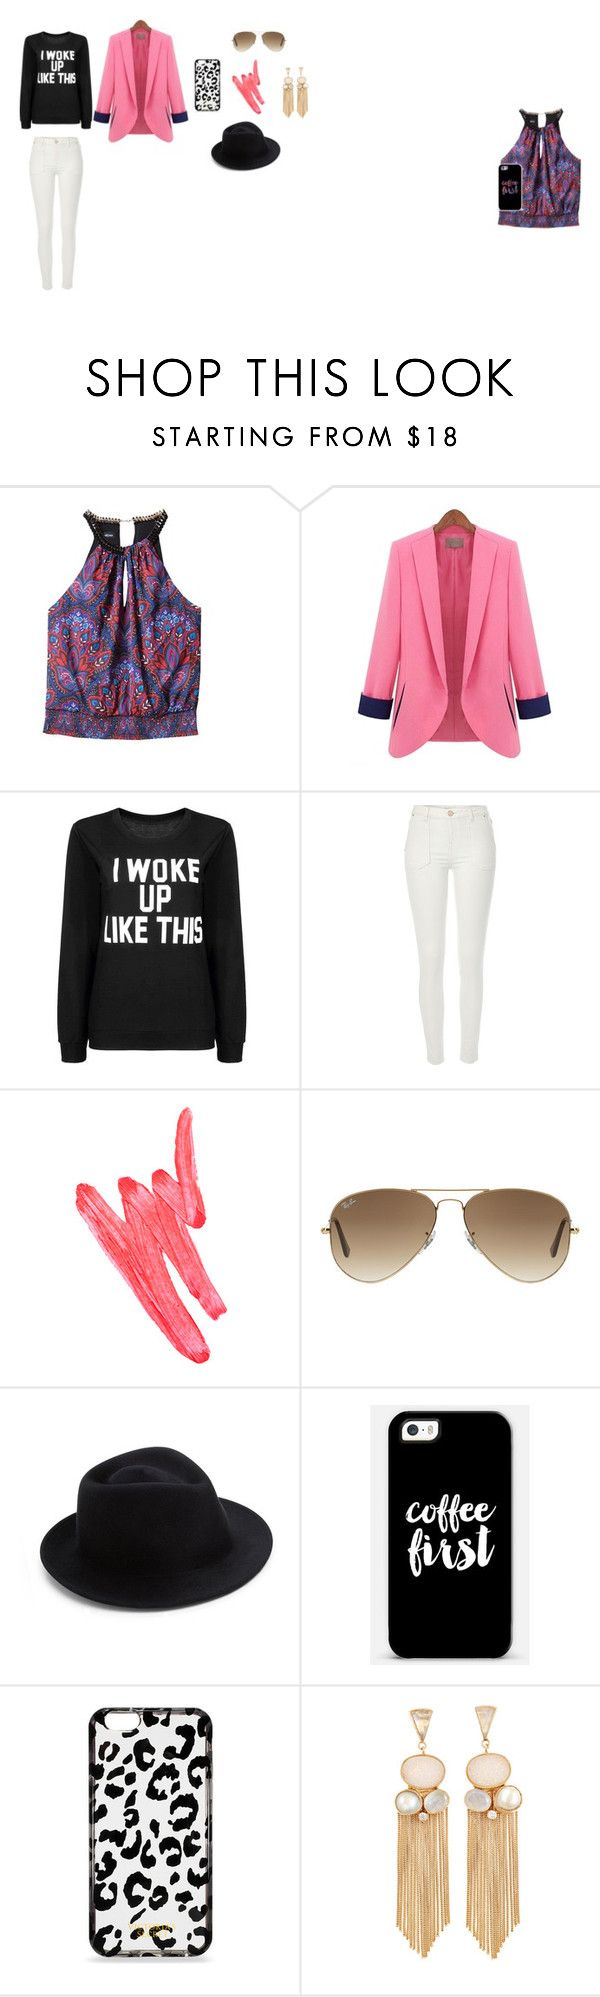 """pink i woke up"" by nattavr on Polyvore featuring moda, Bebe, River Island, Ilia, Ray-Ban, Eugenia Kim, Casetify y Victoria's Secret"